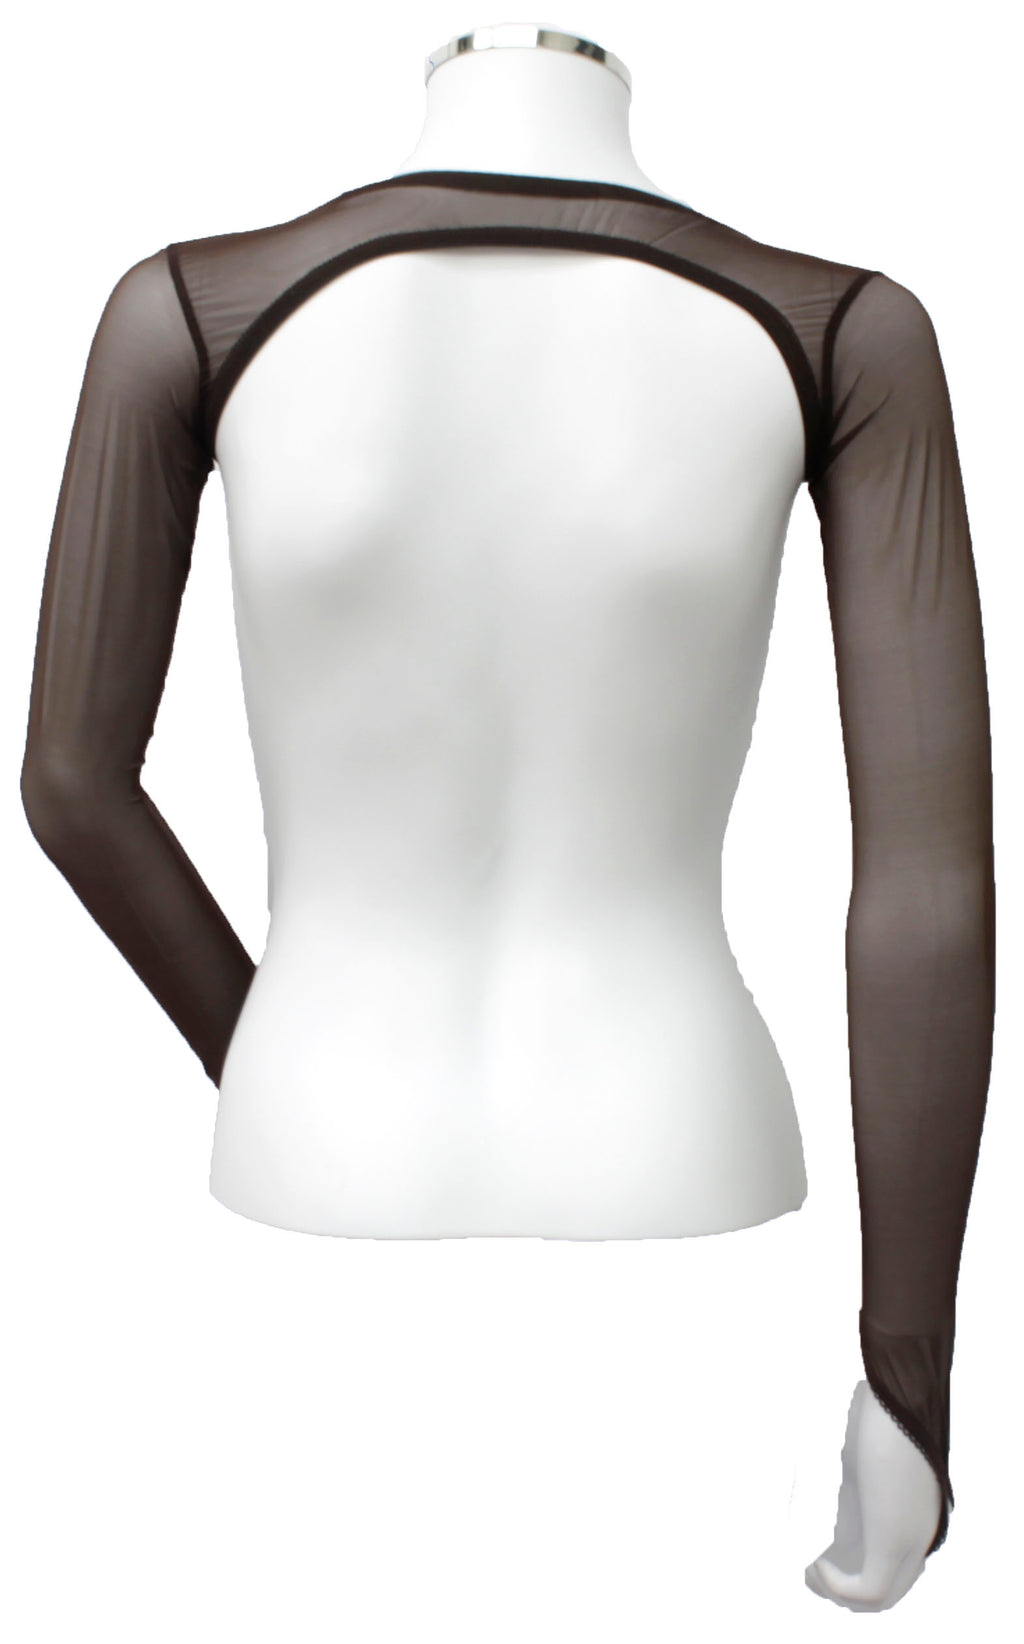 Backless Shrug - Dark Chocolate